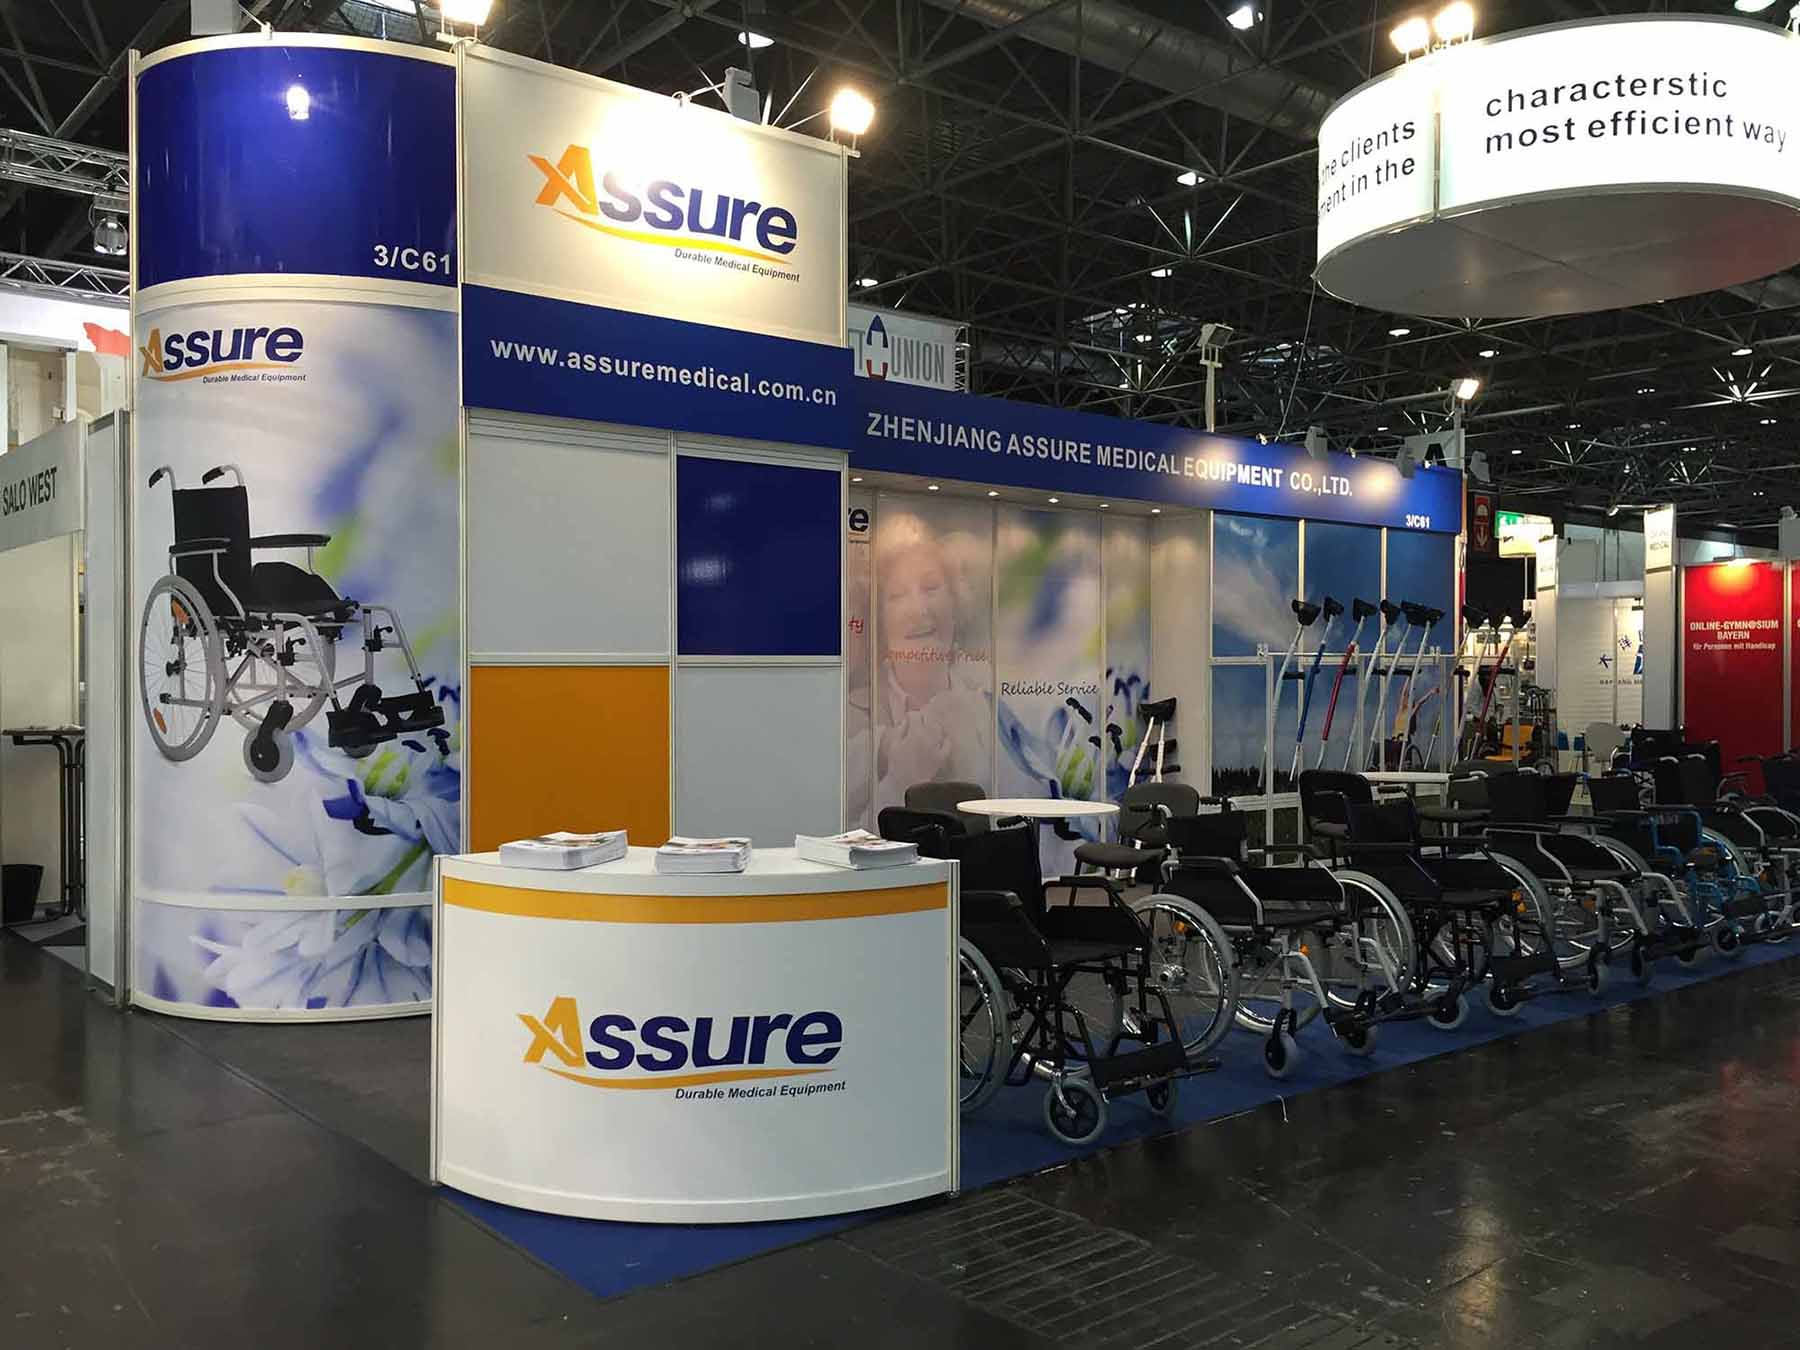 2015 Rehacare 14˜17 Oct